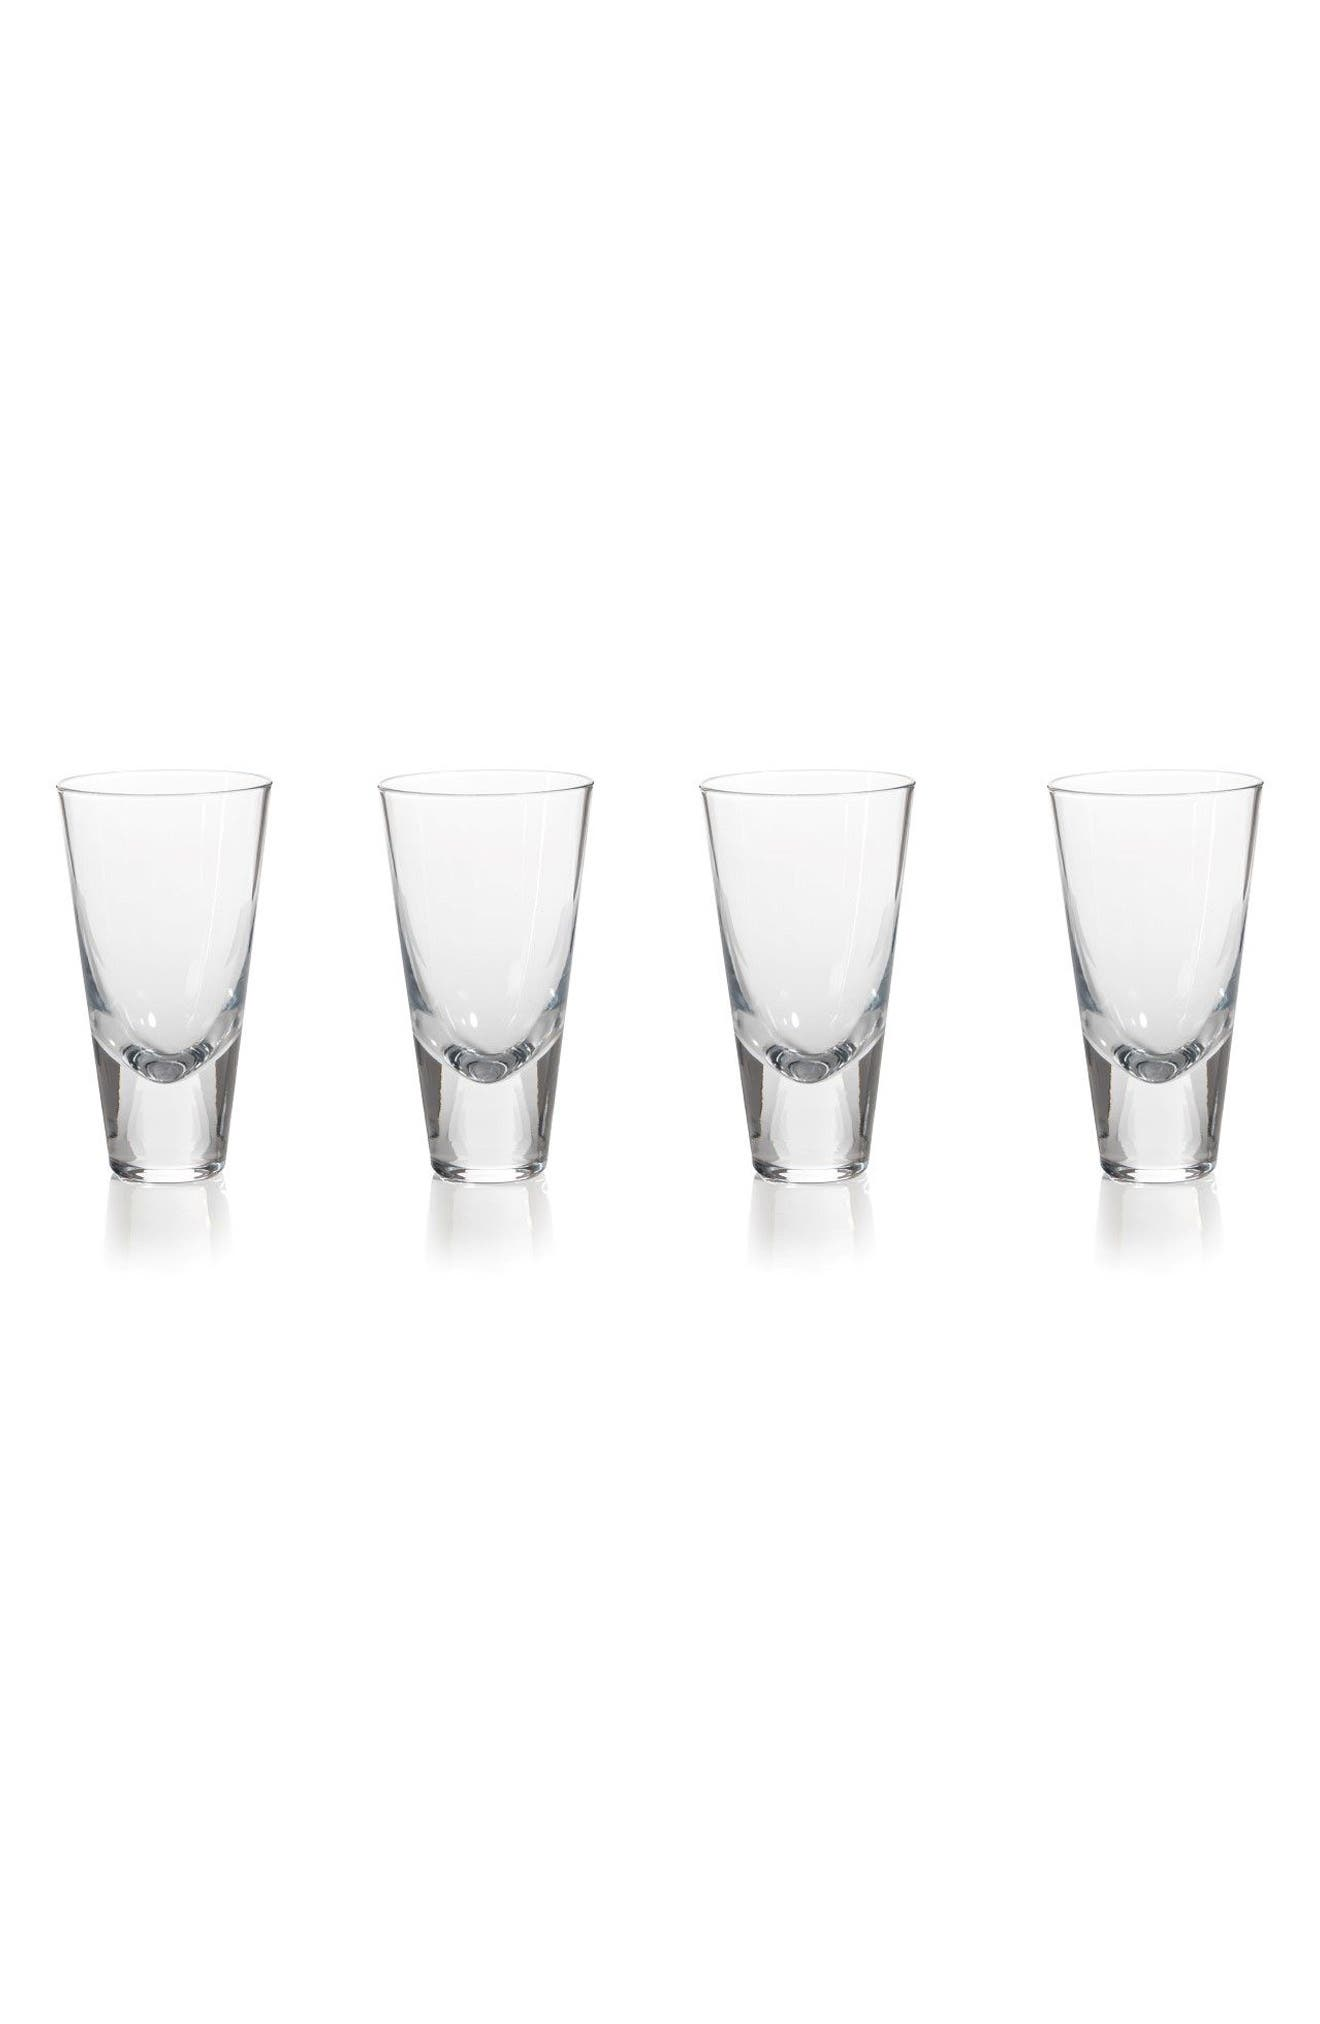 Anatole Set of 4 Drinking Glasses,                             Main thumbnail 1, color,                             Clear